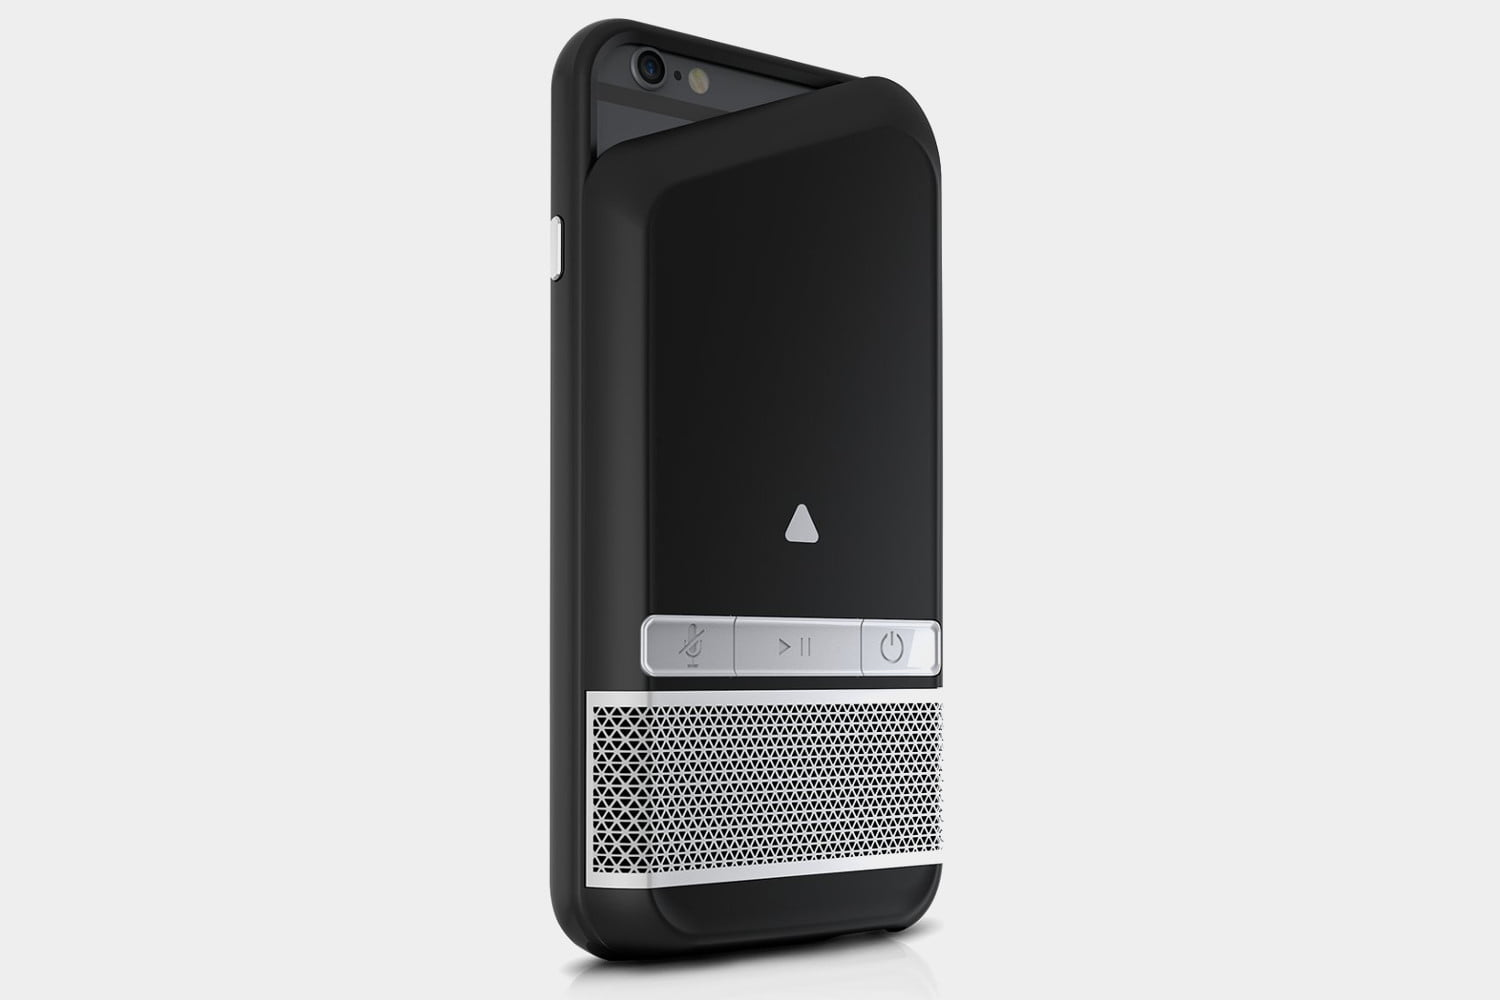 the best iphone 6 cases and covers digital trendszagg speaker case this unusual offering from zagg is unlike any iphone 6